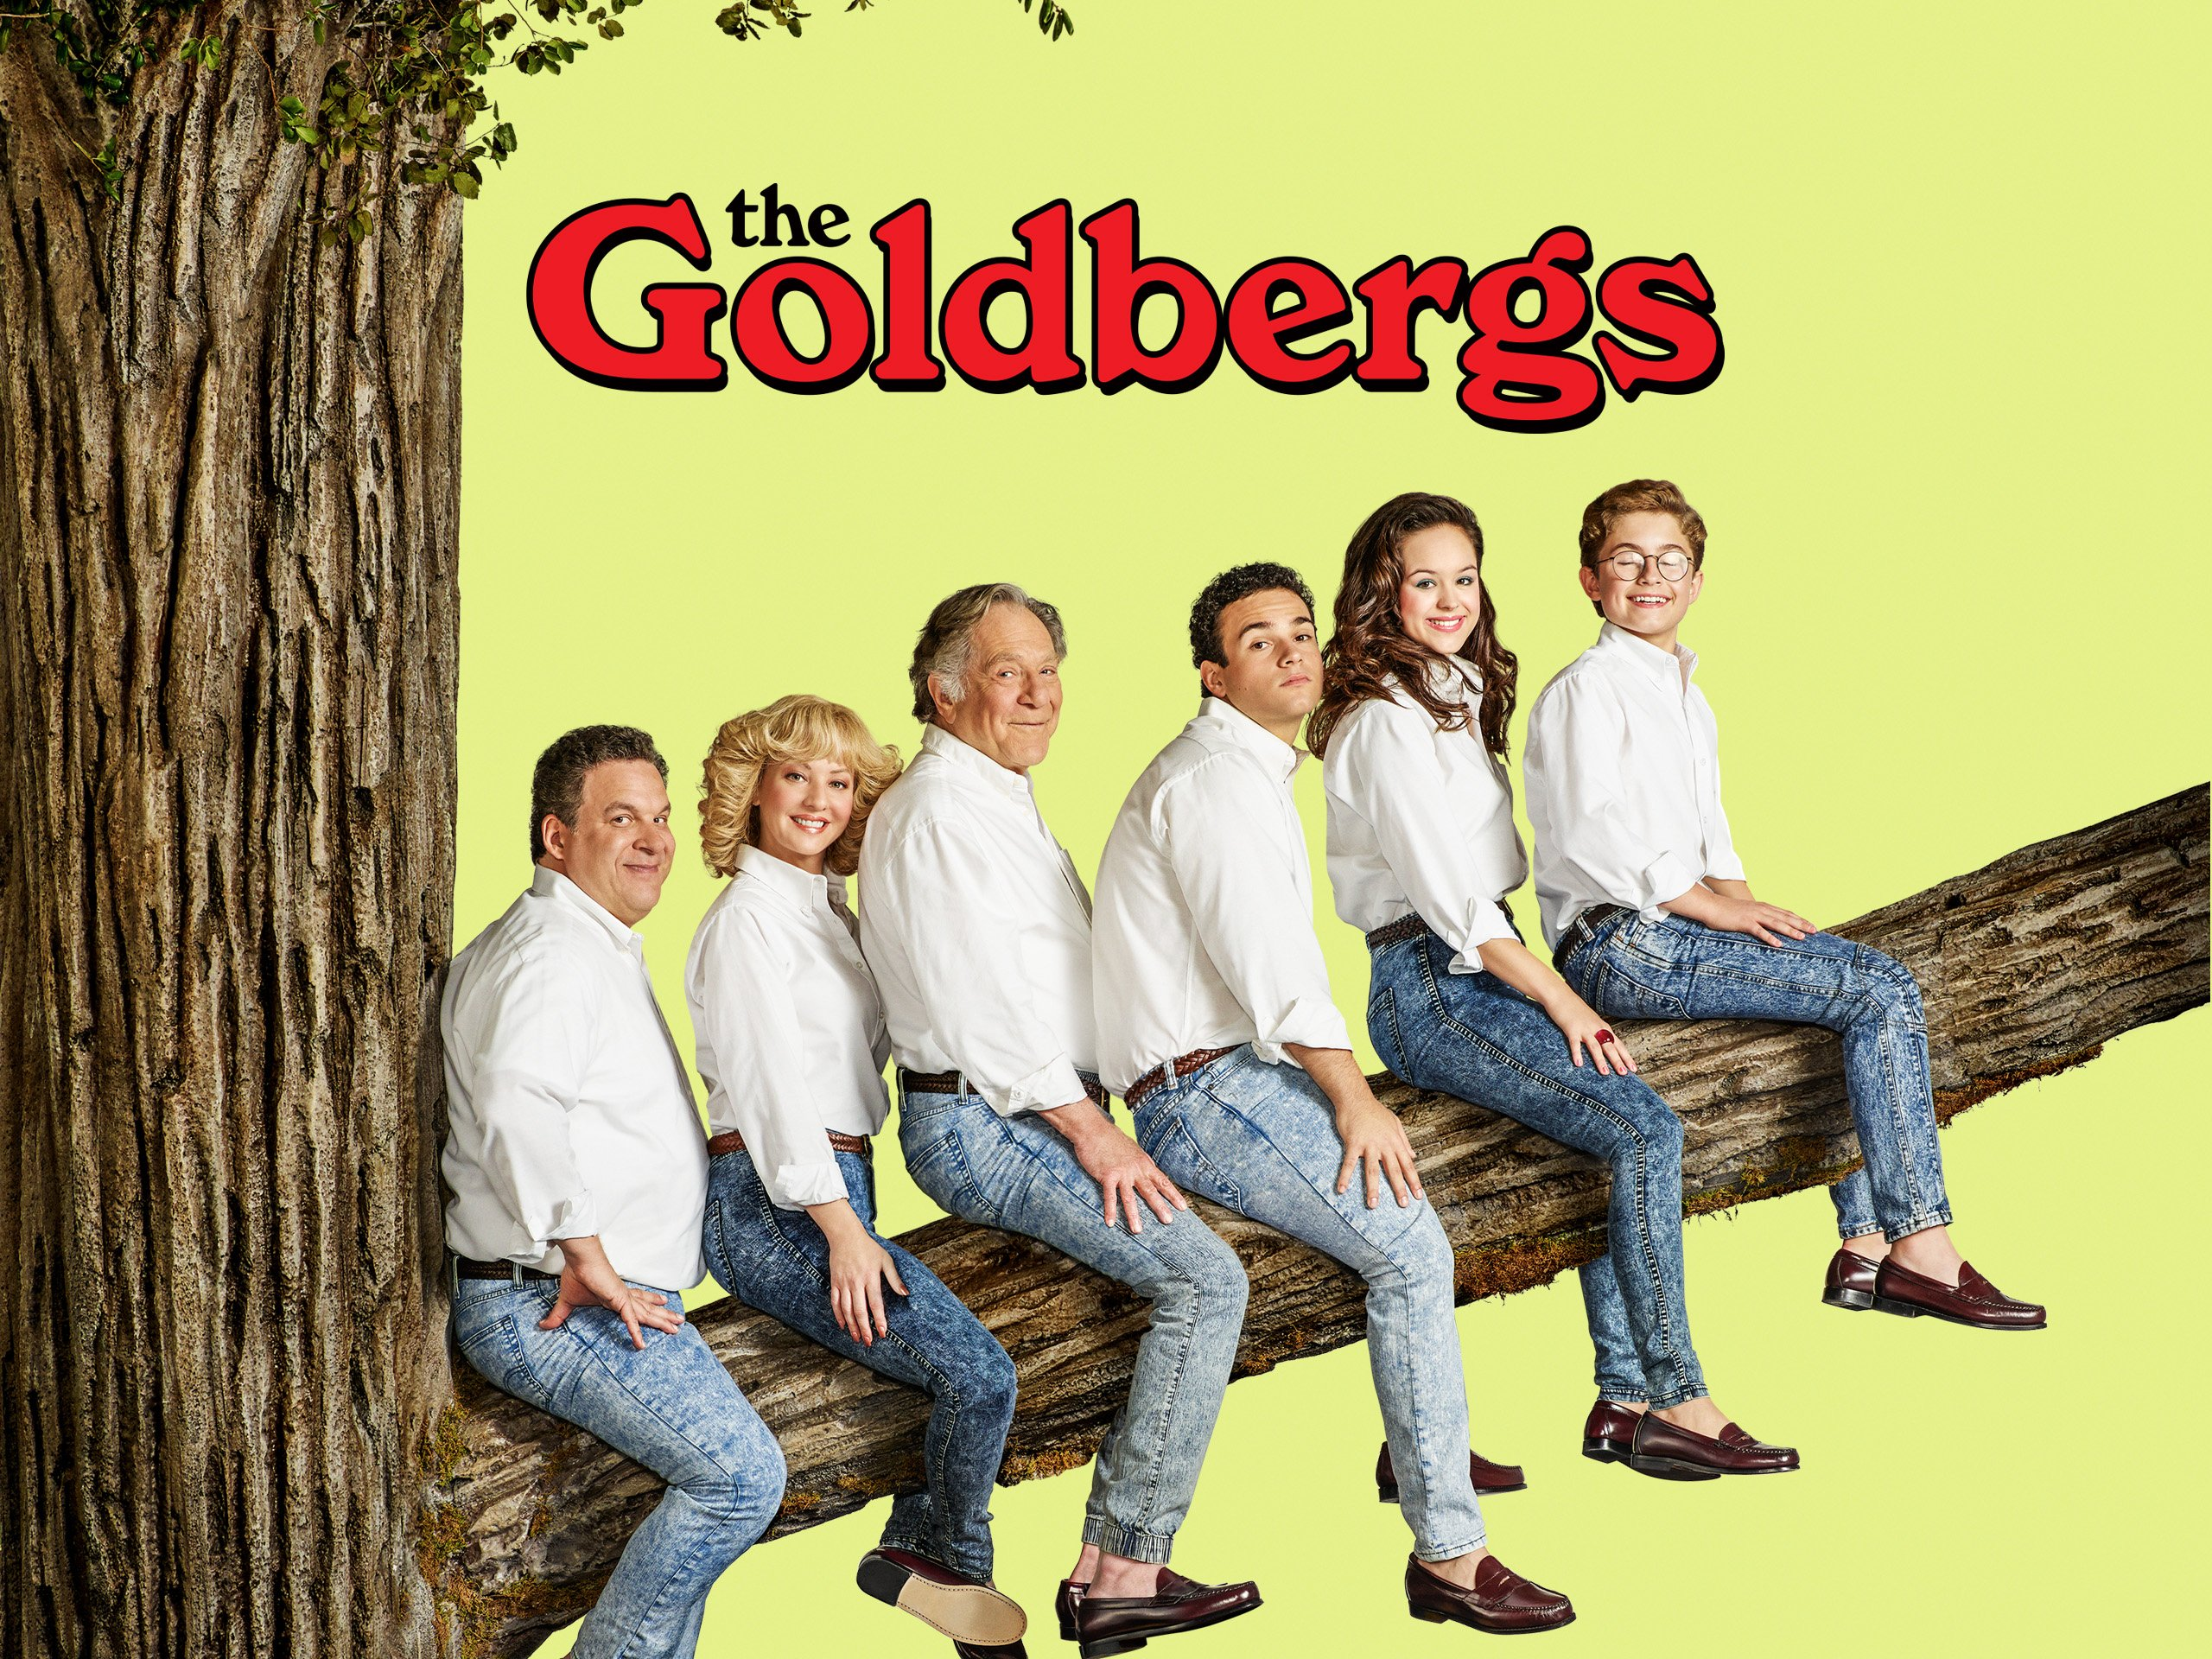 The Goldbergs Season 9 Release Date, Cast And Everything You Need To Know